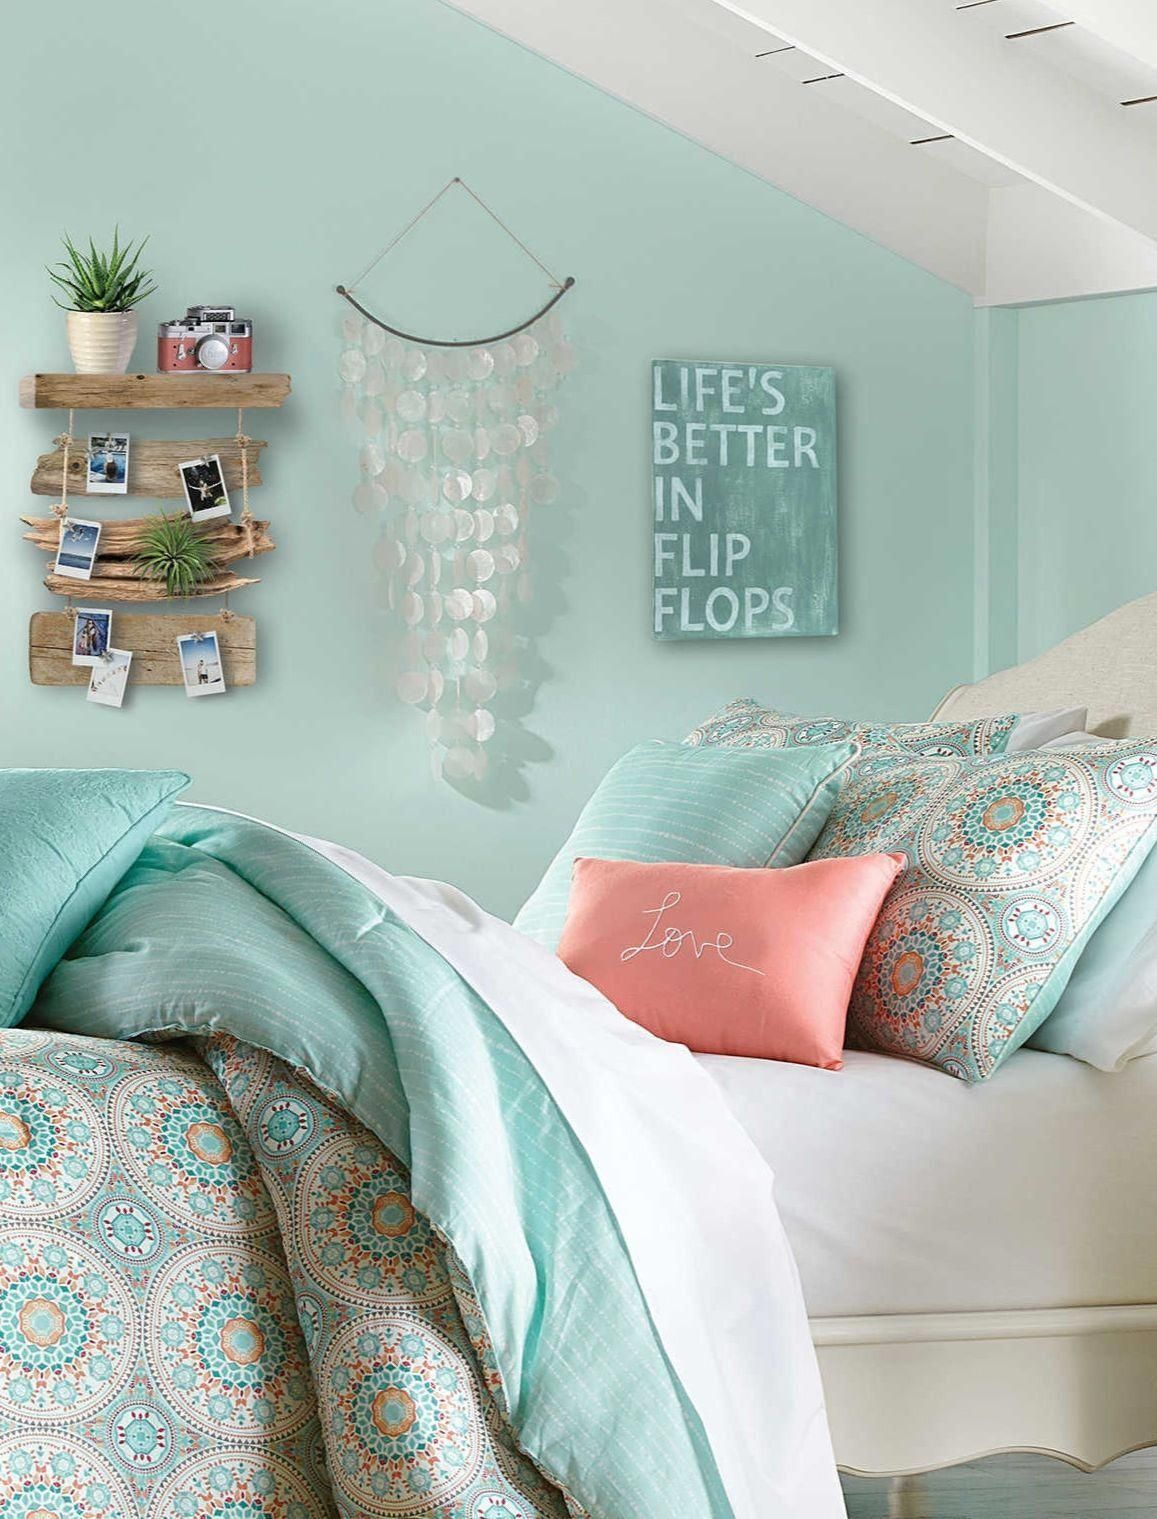 7 Tips For Soft Subdued Light When Children Are Afraid Of The